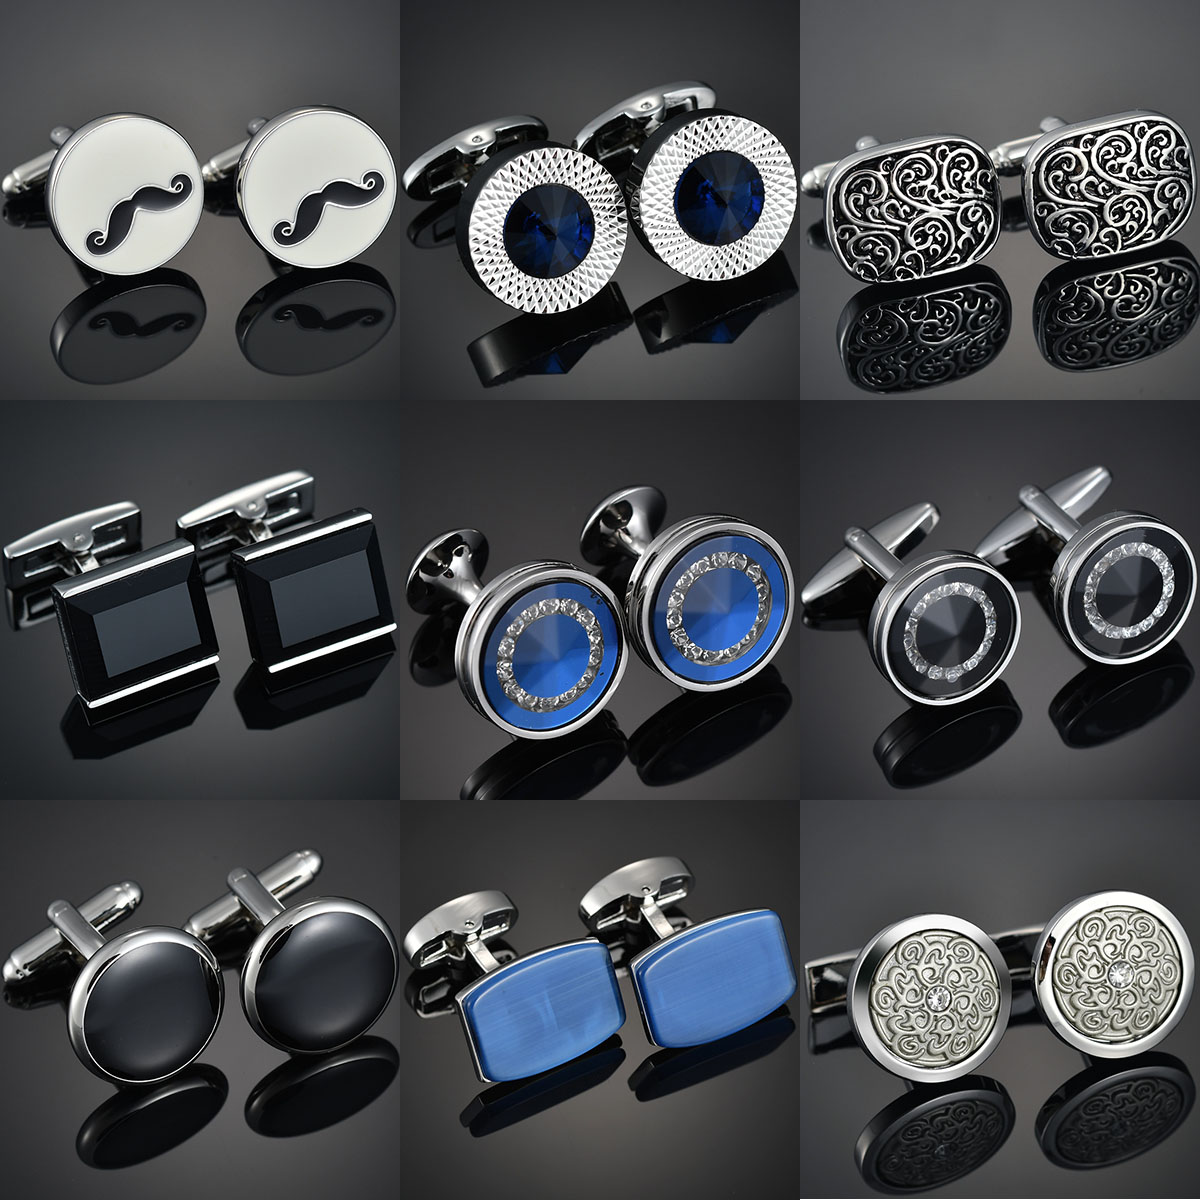 High-end Men's Shirts Cufflinks Luxury Design Silver Round Blue Crystal Cufflinks Gemelos Para Hombre Camisa Bouton Manchette